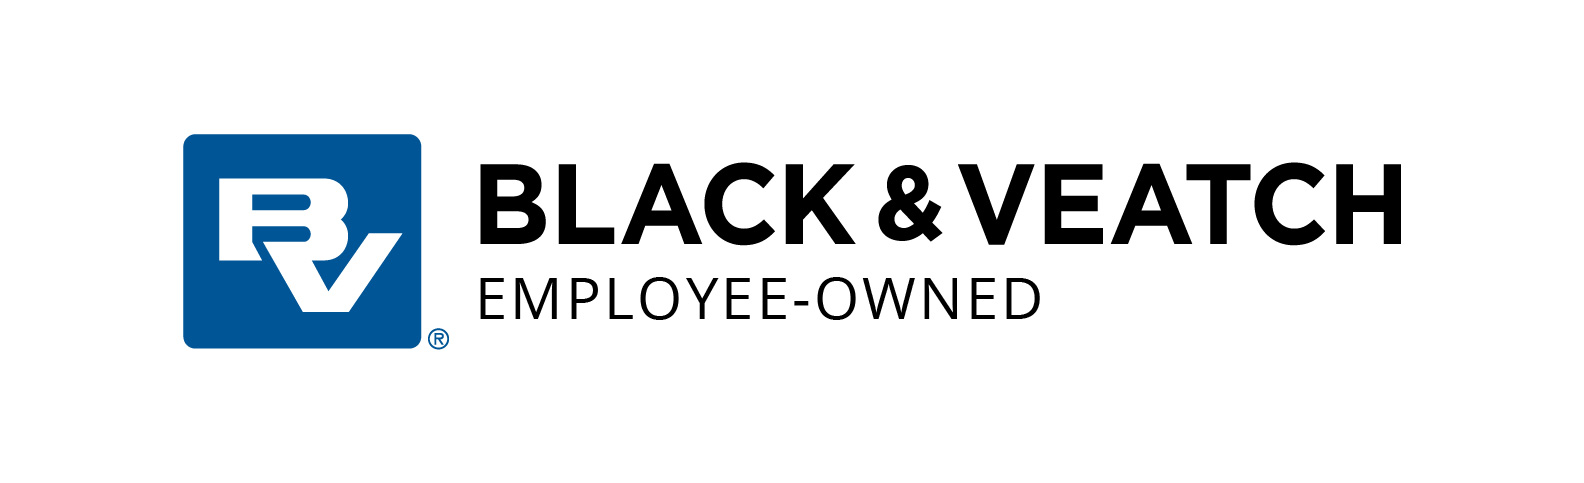 Black & Veatch Corp